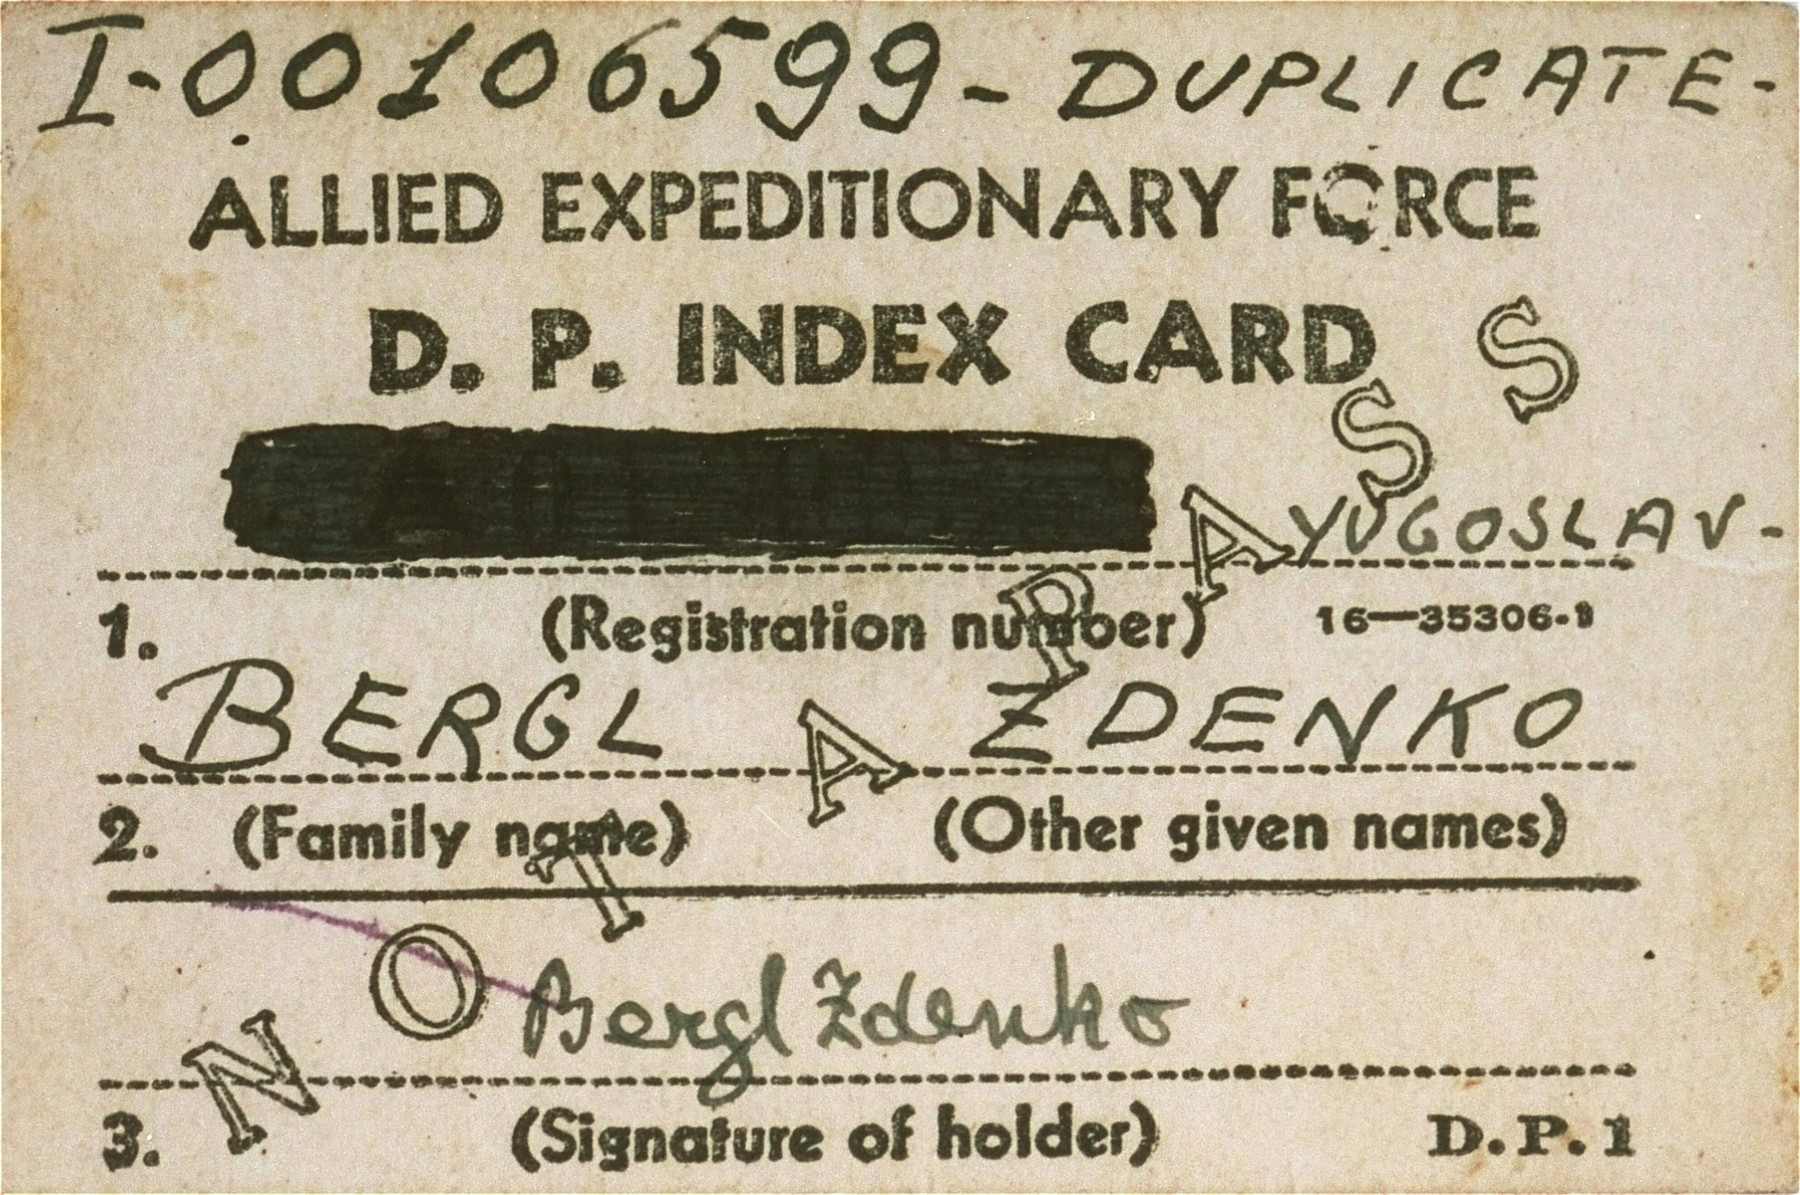 DP index card issued to Zdenko Bergl when he arrived at the Cinecitta displaced persons camp.